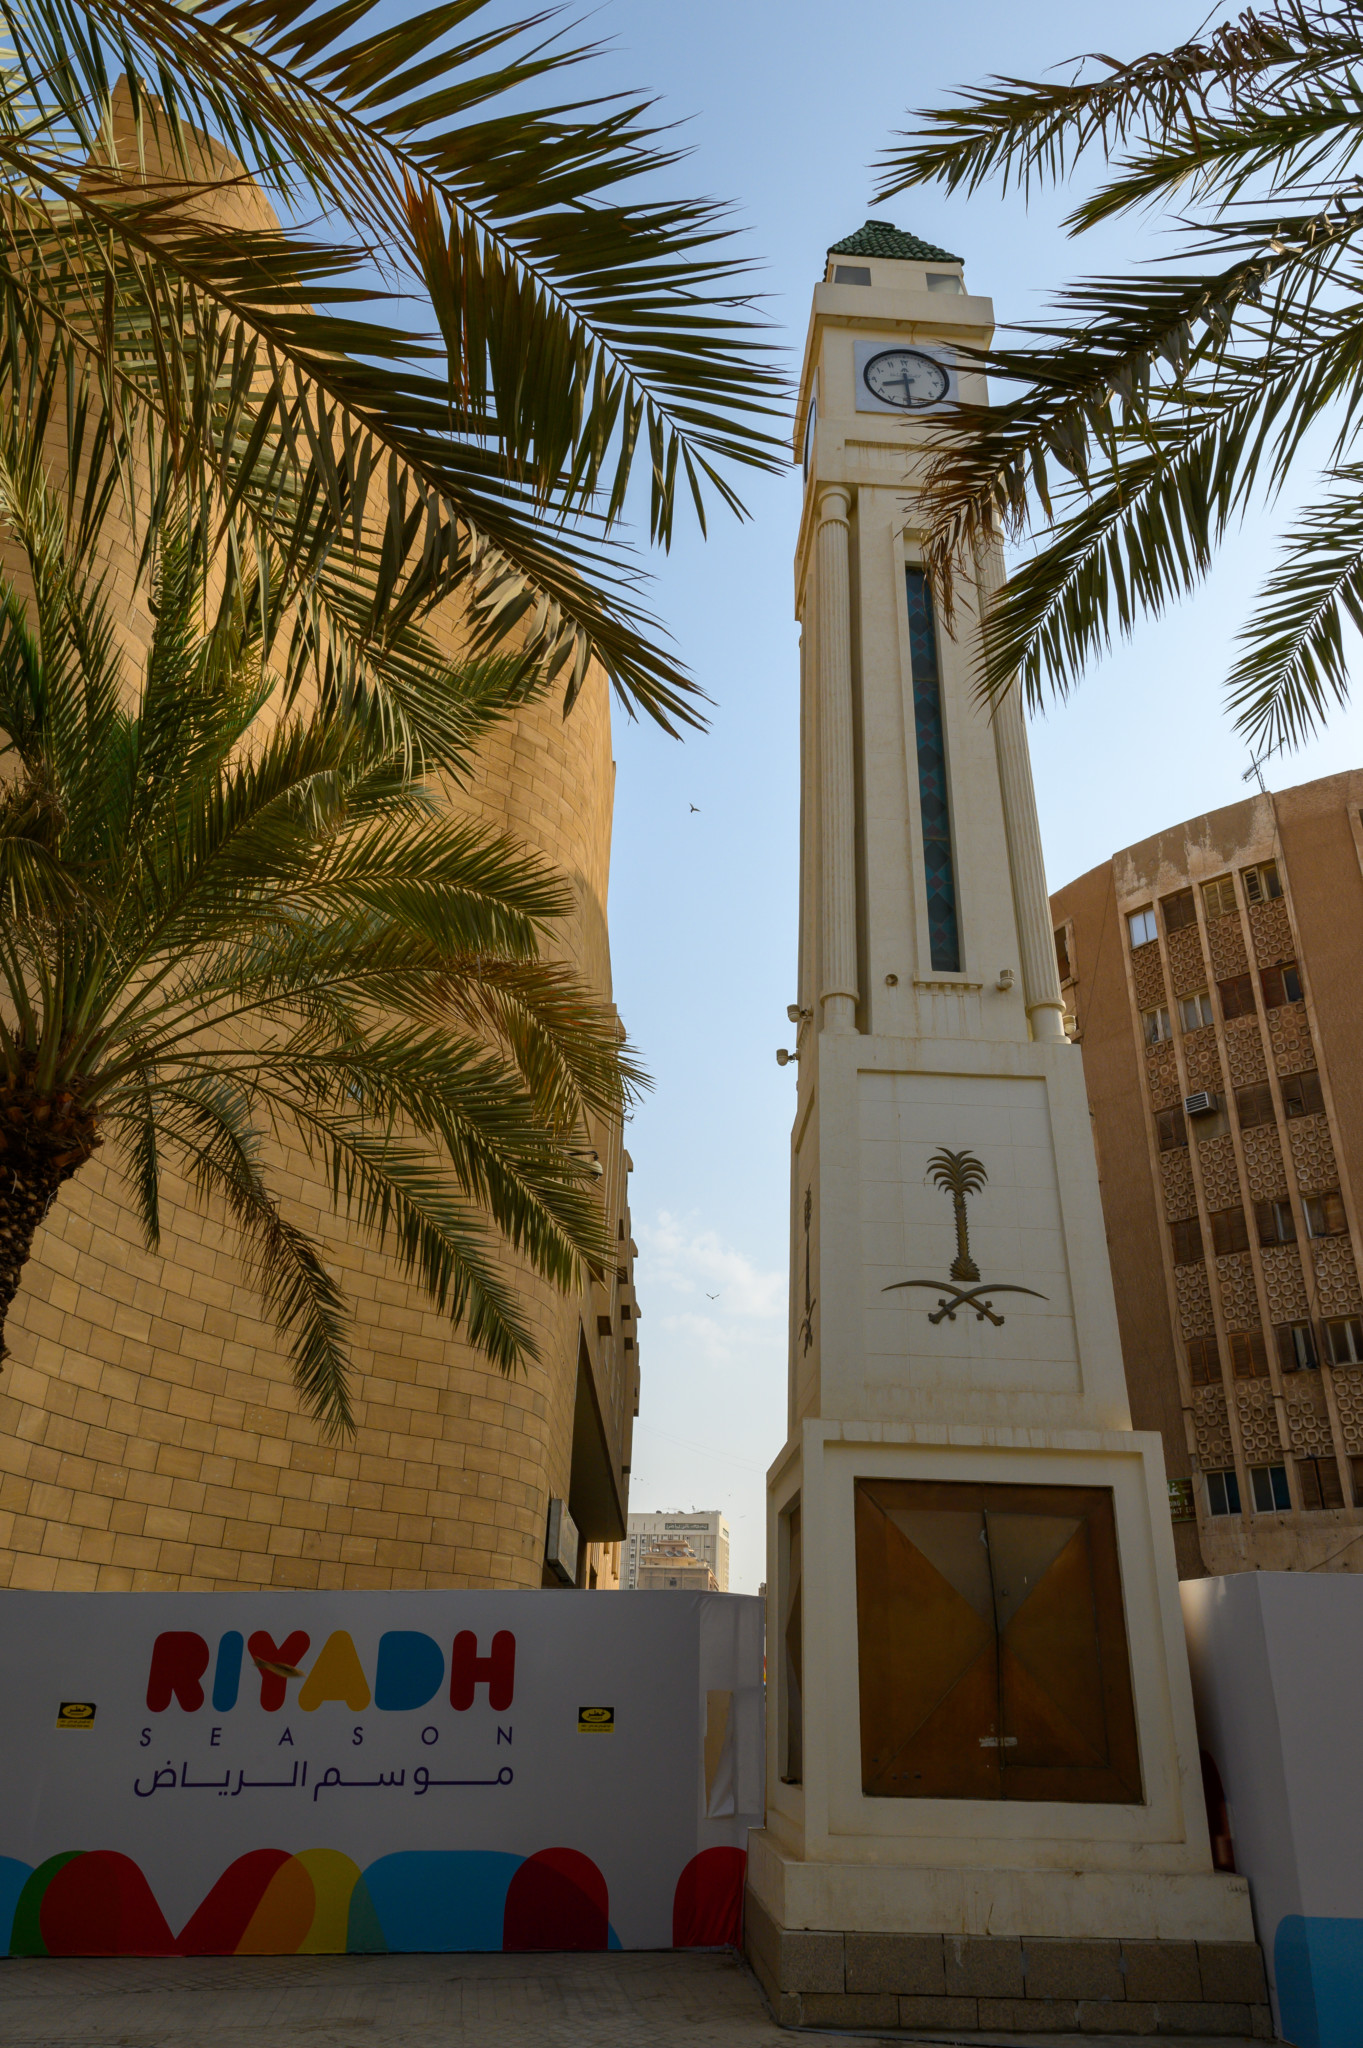 Clock Tower in Riad Saudi-Arabien